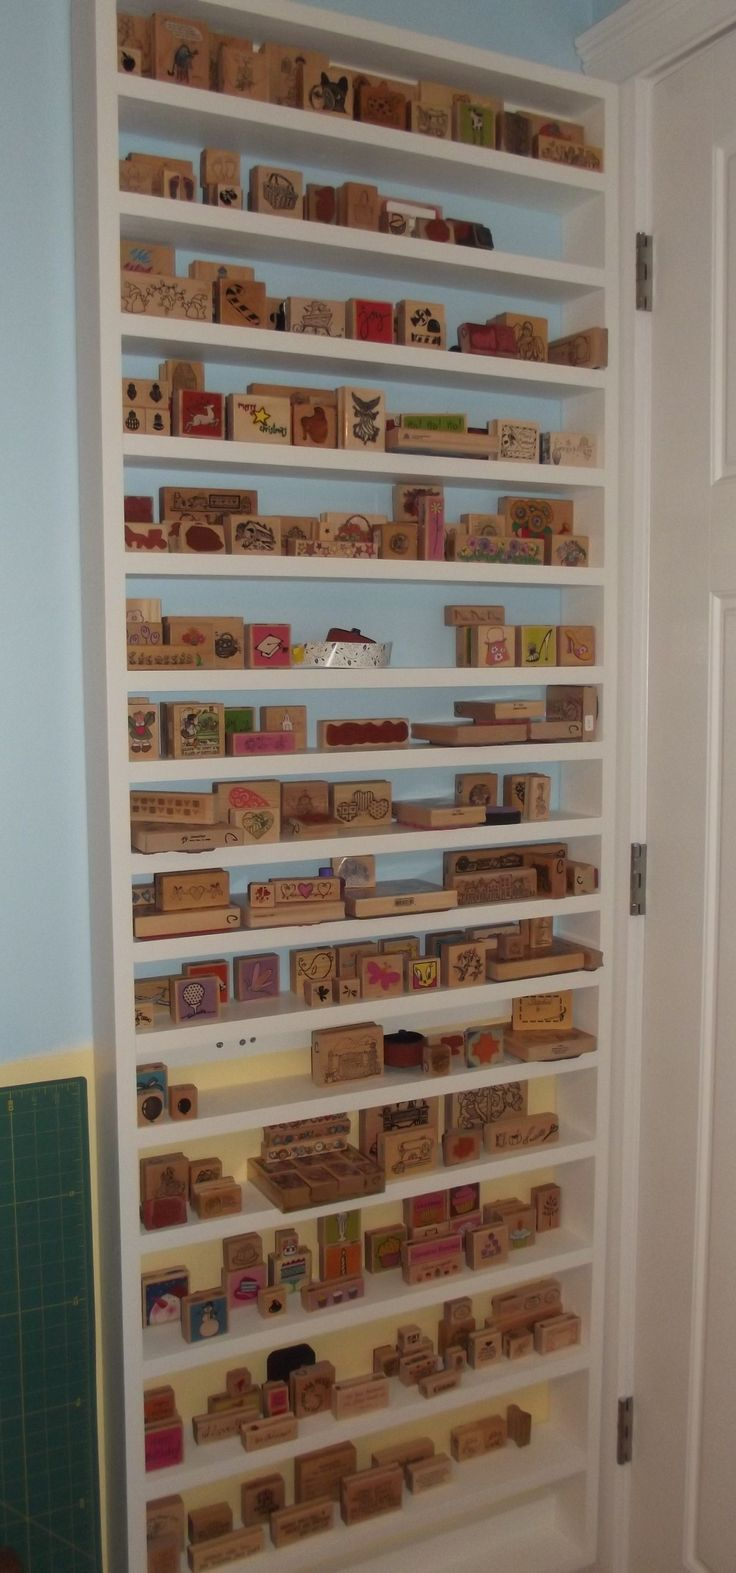 Rubber stamps for crafting - Shelving For Rubber Stamps This Could Also Be Reseat Into The Wall Between